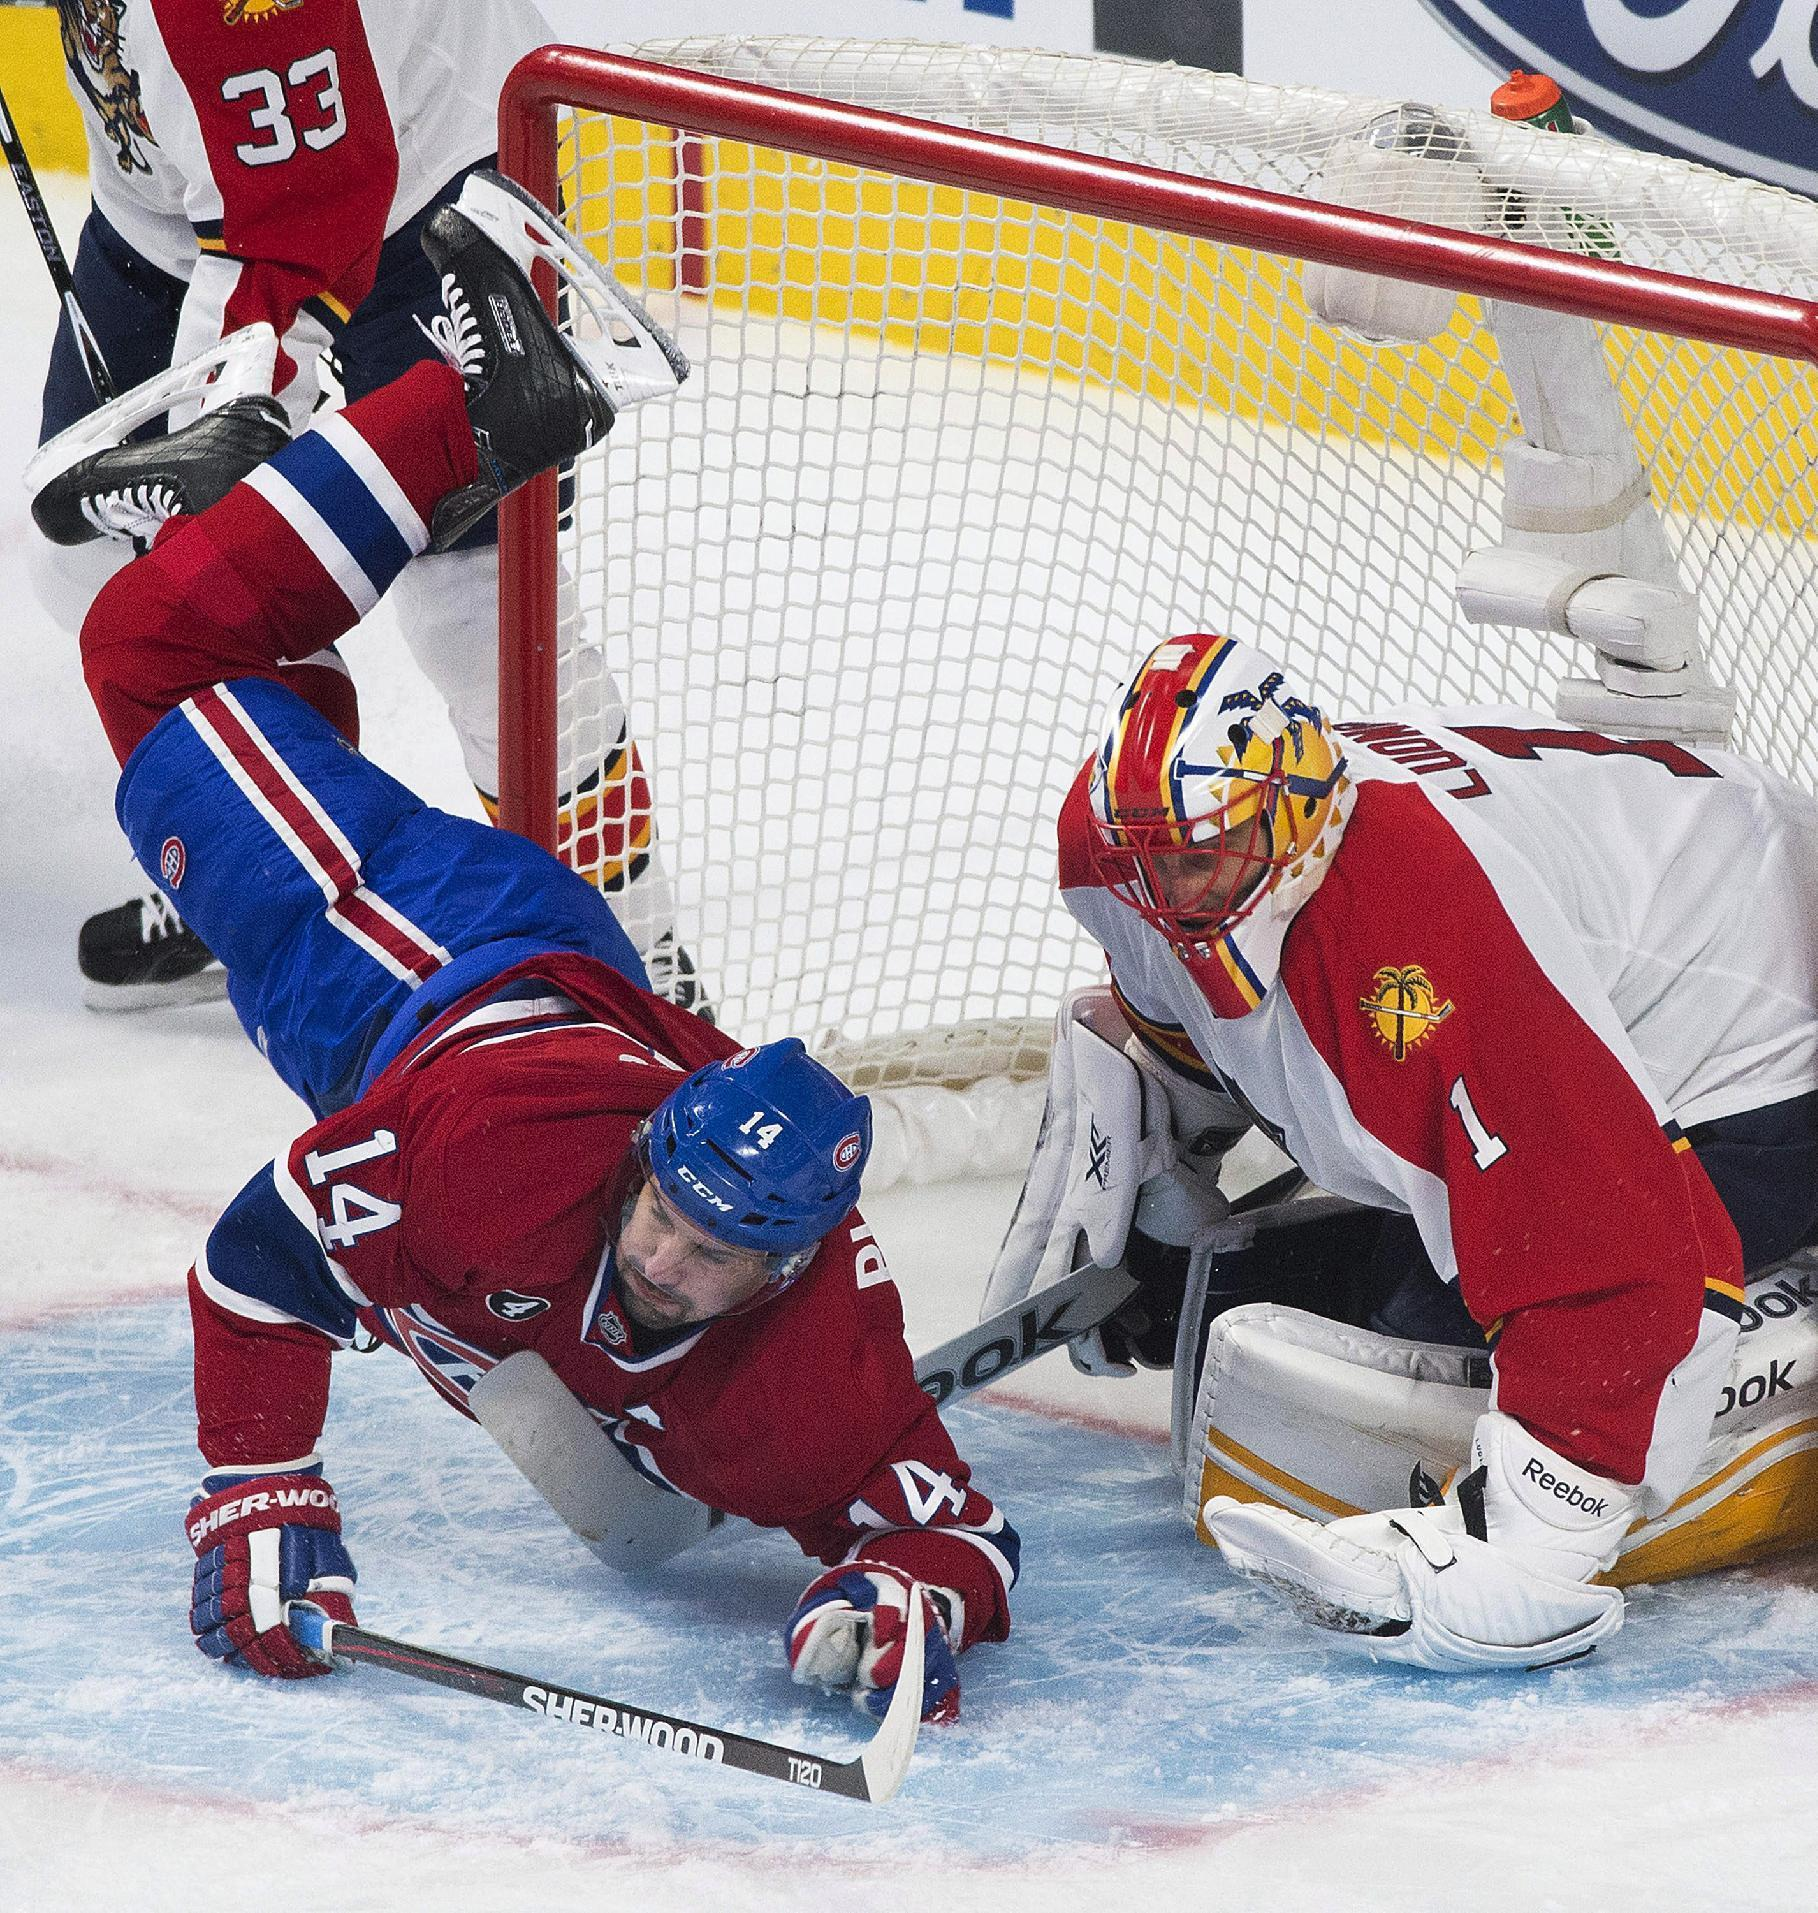 Canadiens edge Panthers 3-2 in OT, clinch playoff berth